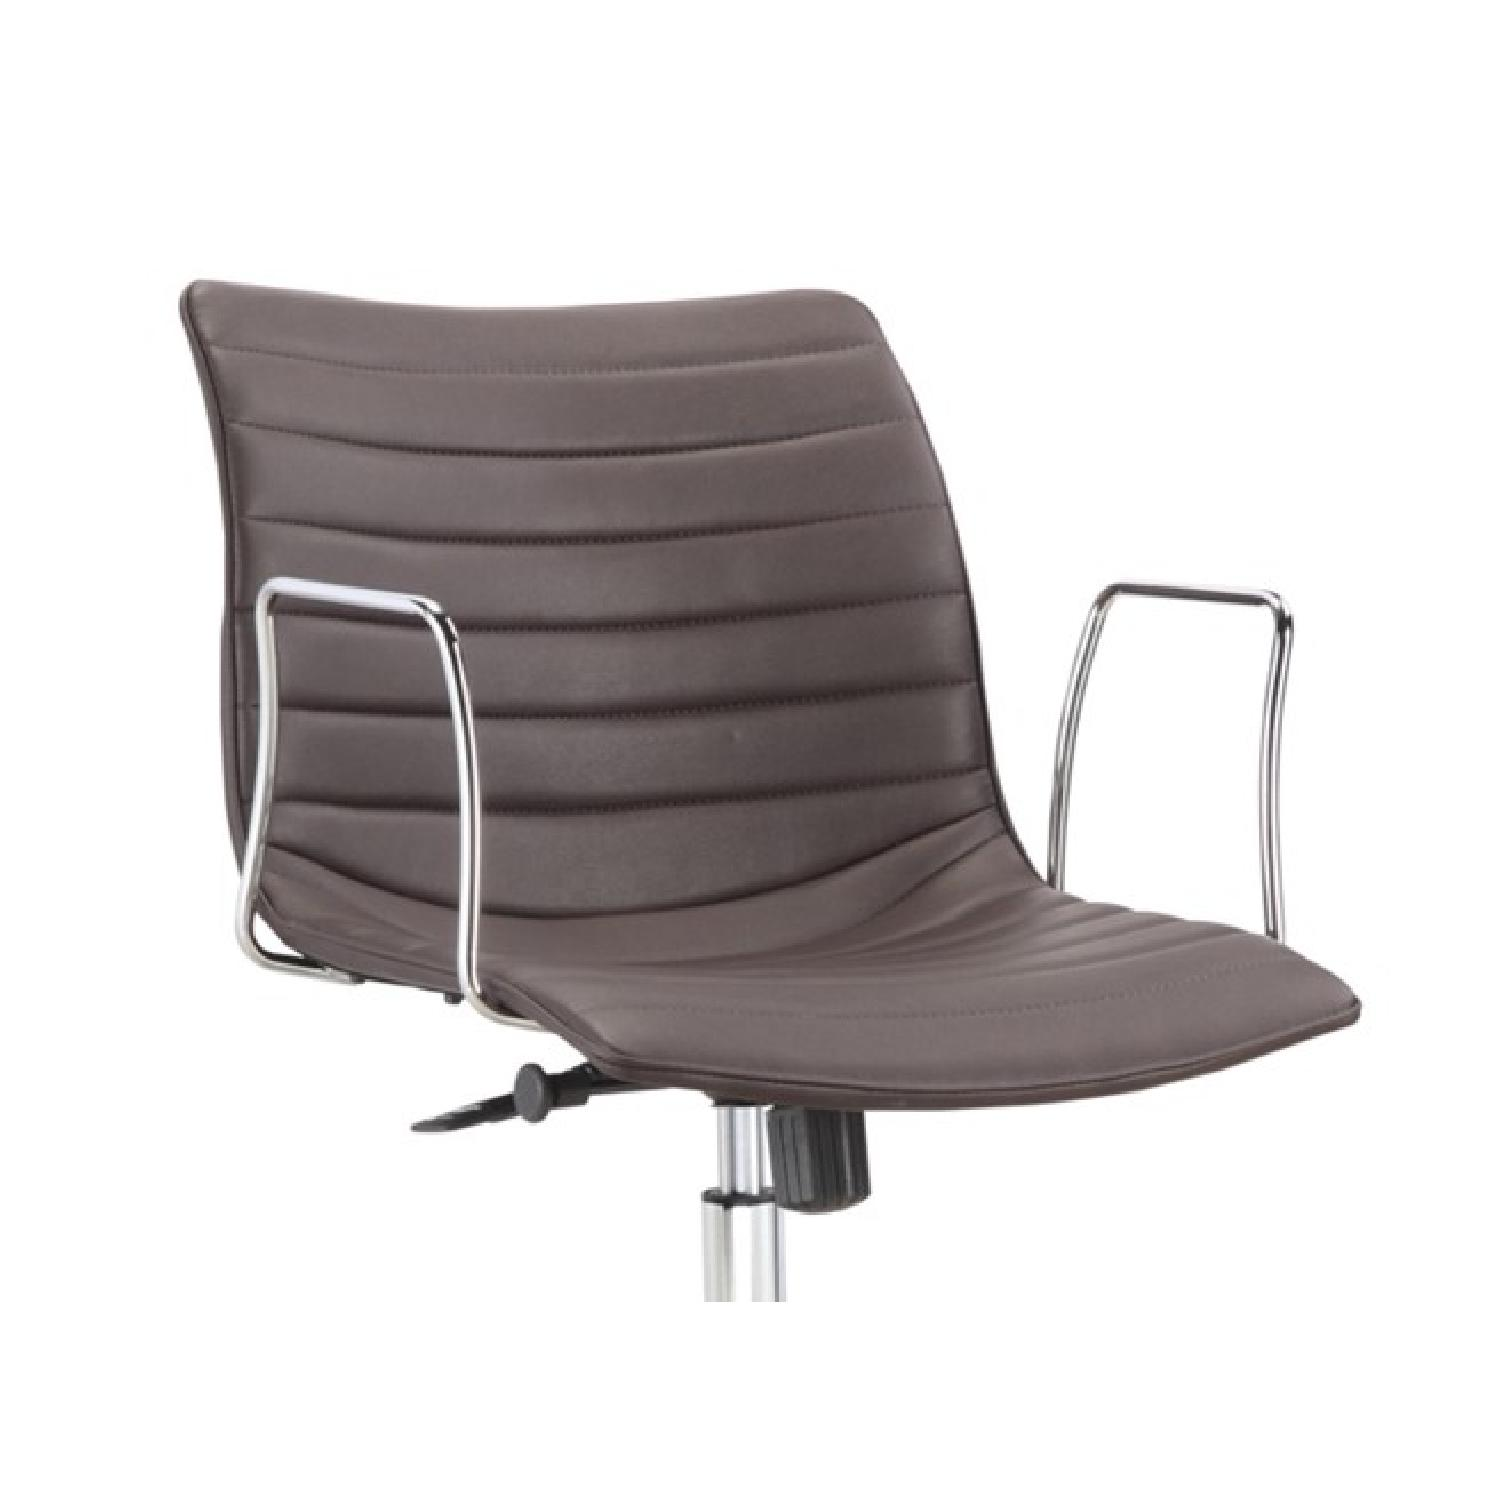 Modern Mid-Back Office Chair w/ Chrome Arms & Dark Brown Lea - image-1